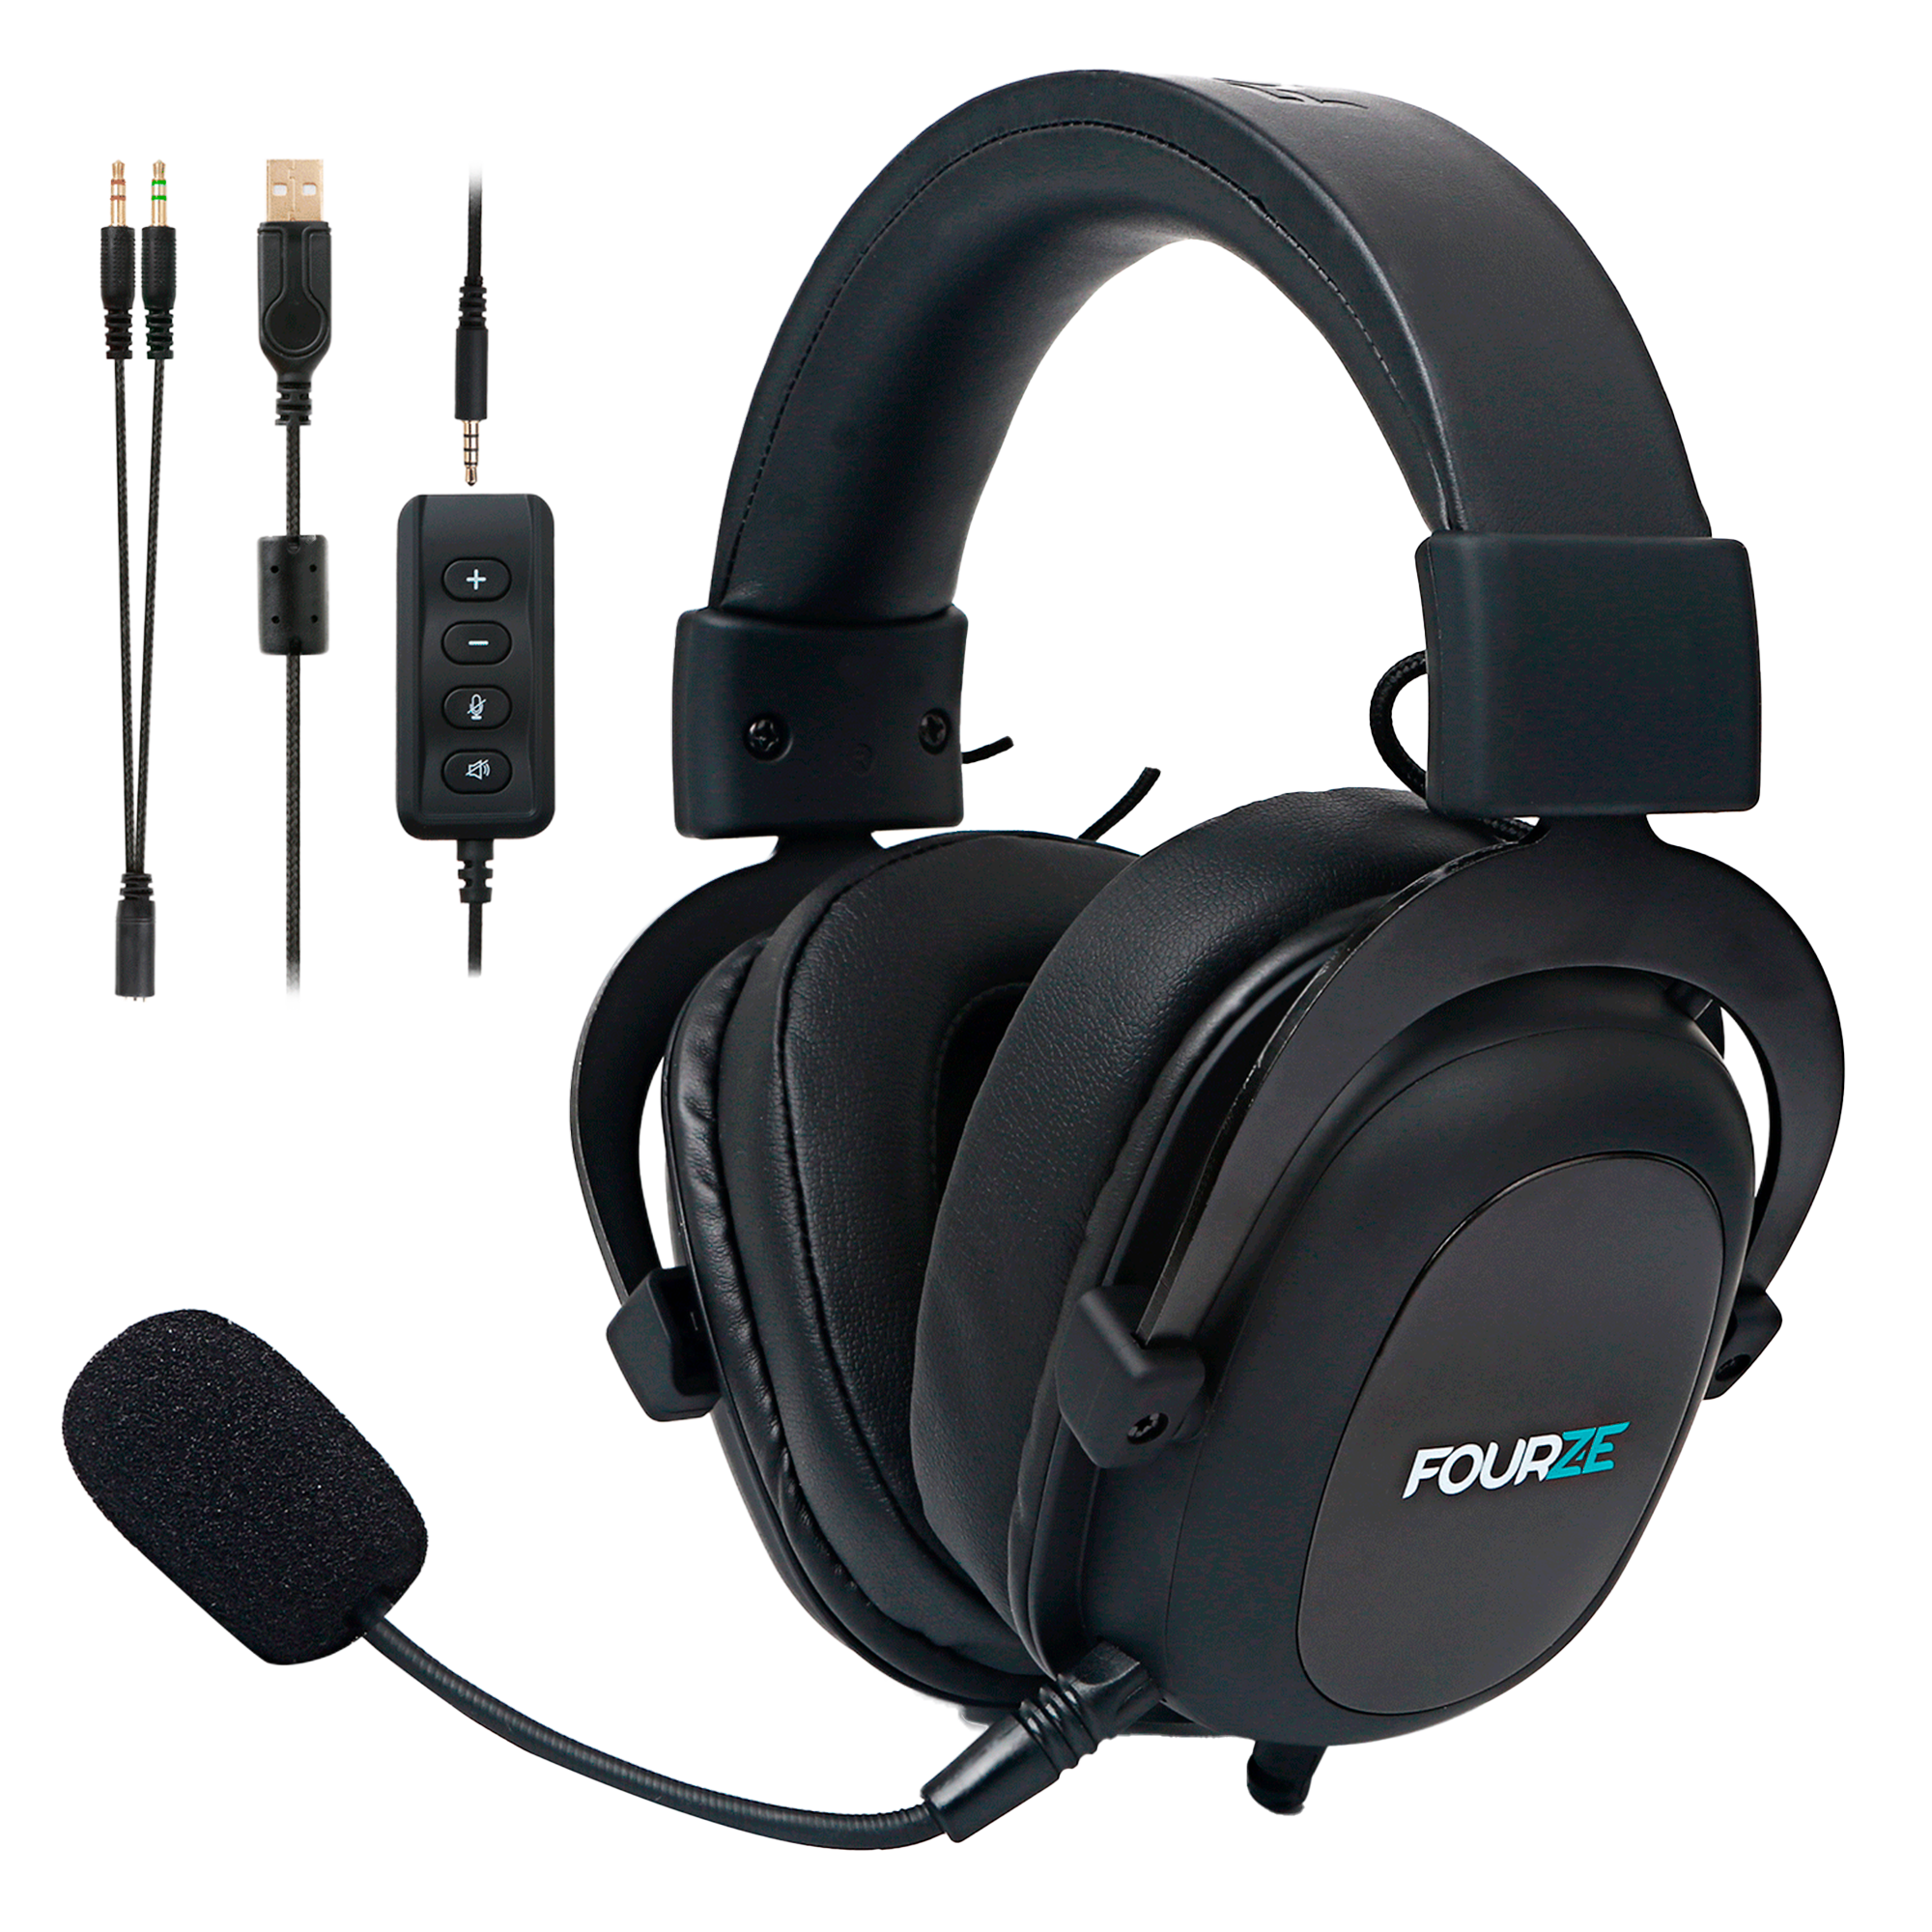 FOURZE GH500 Gaming Headset seen from the left side with cables and microphone.